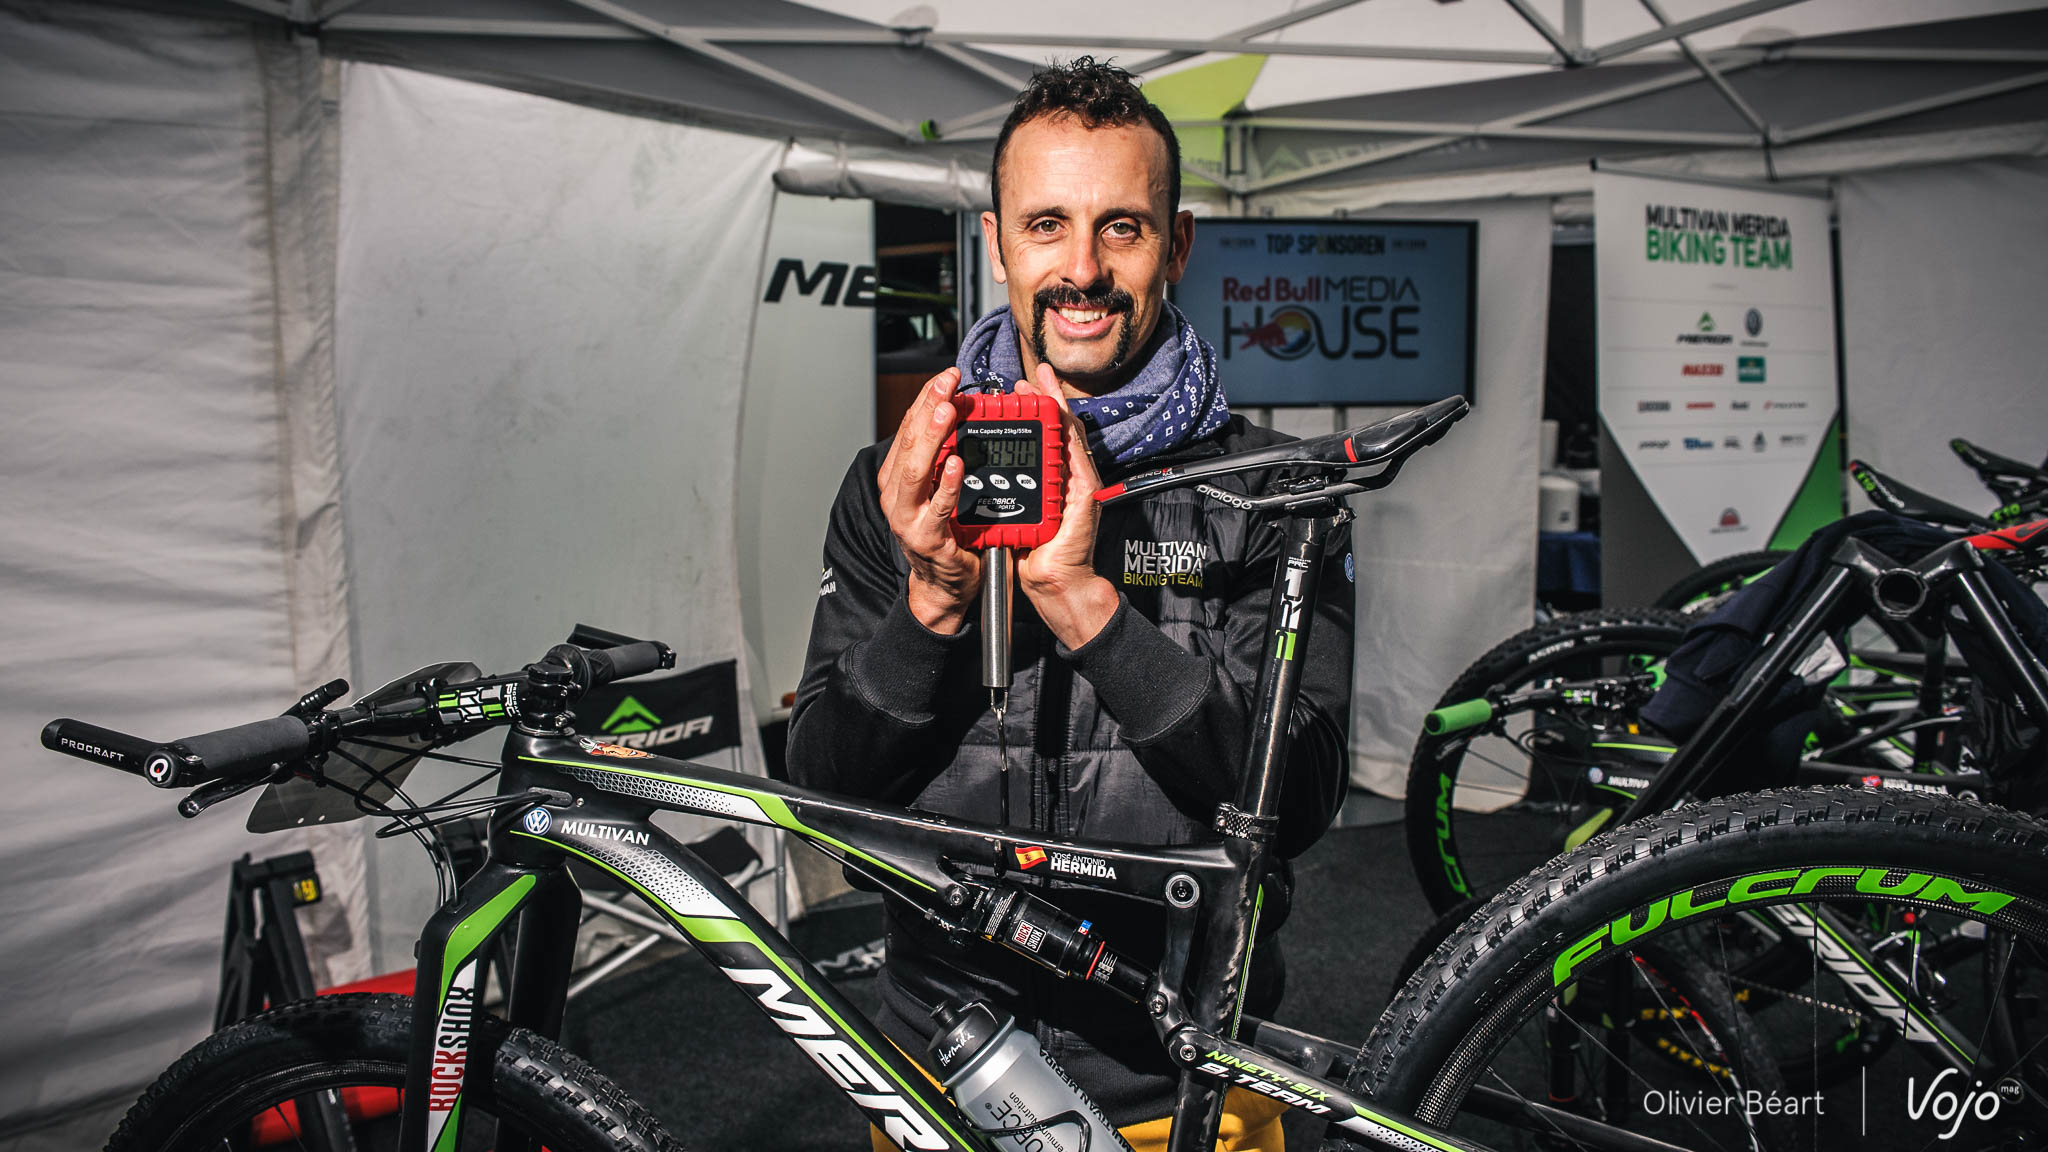 World_Cup_MTB_Pro_Bike_Check_Merida_96_Team_Jose_Hermida_Copyright_OBeart_VojoMag-2